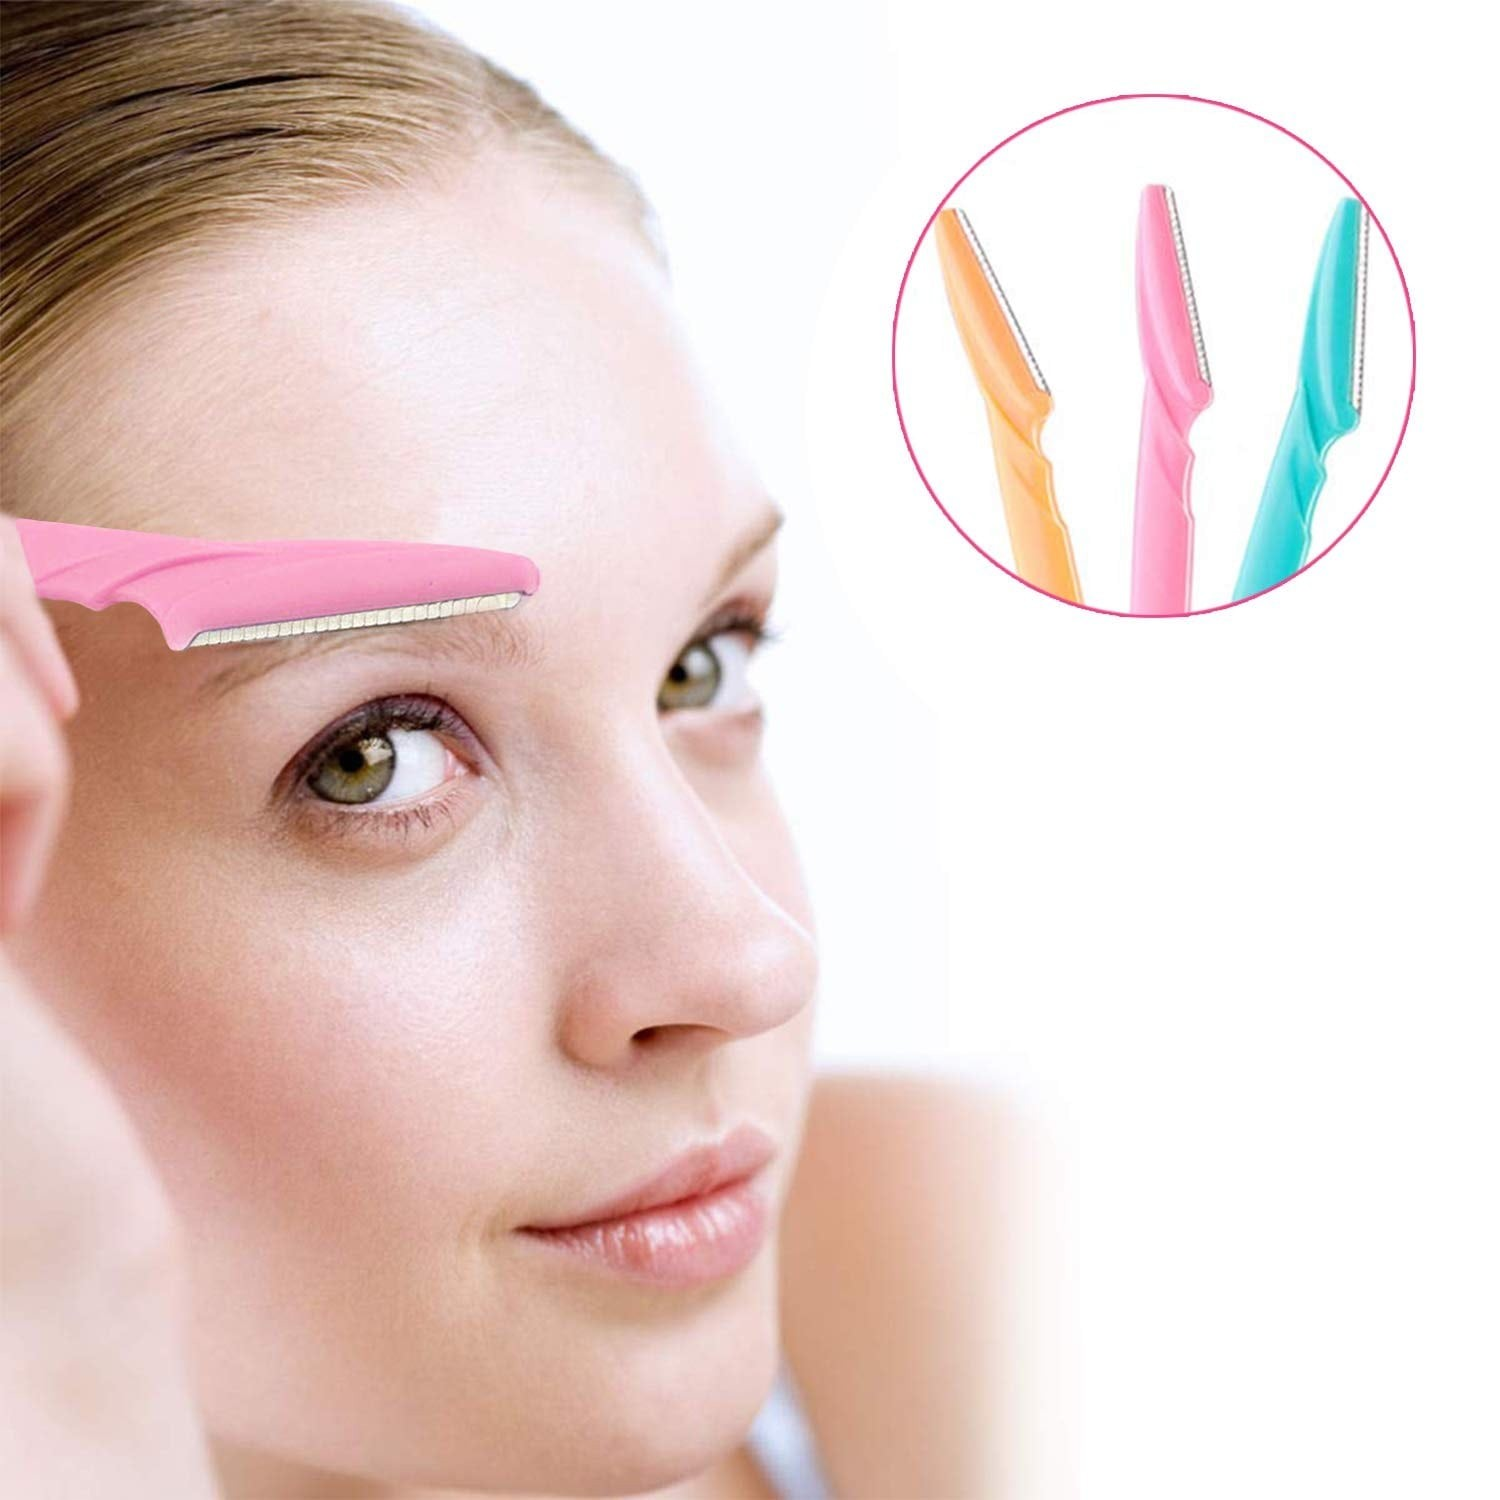 woman holding brow shaping/hair removal blade over her eyebrow.